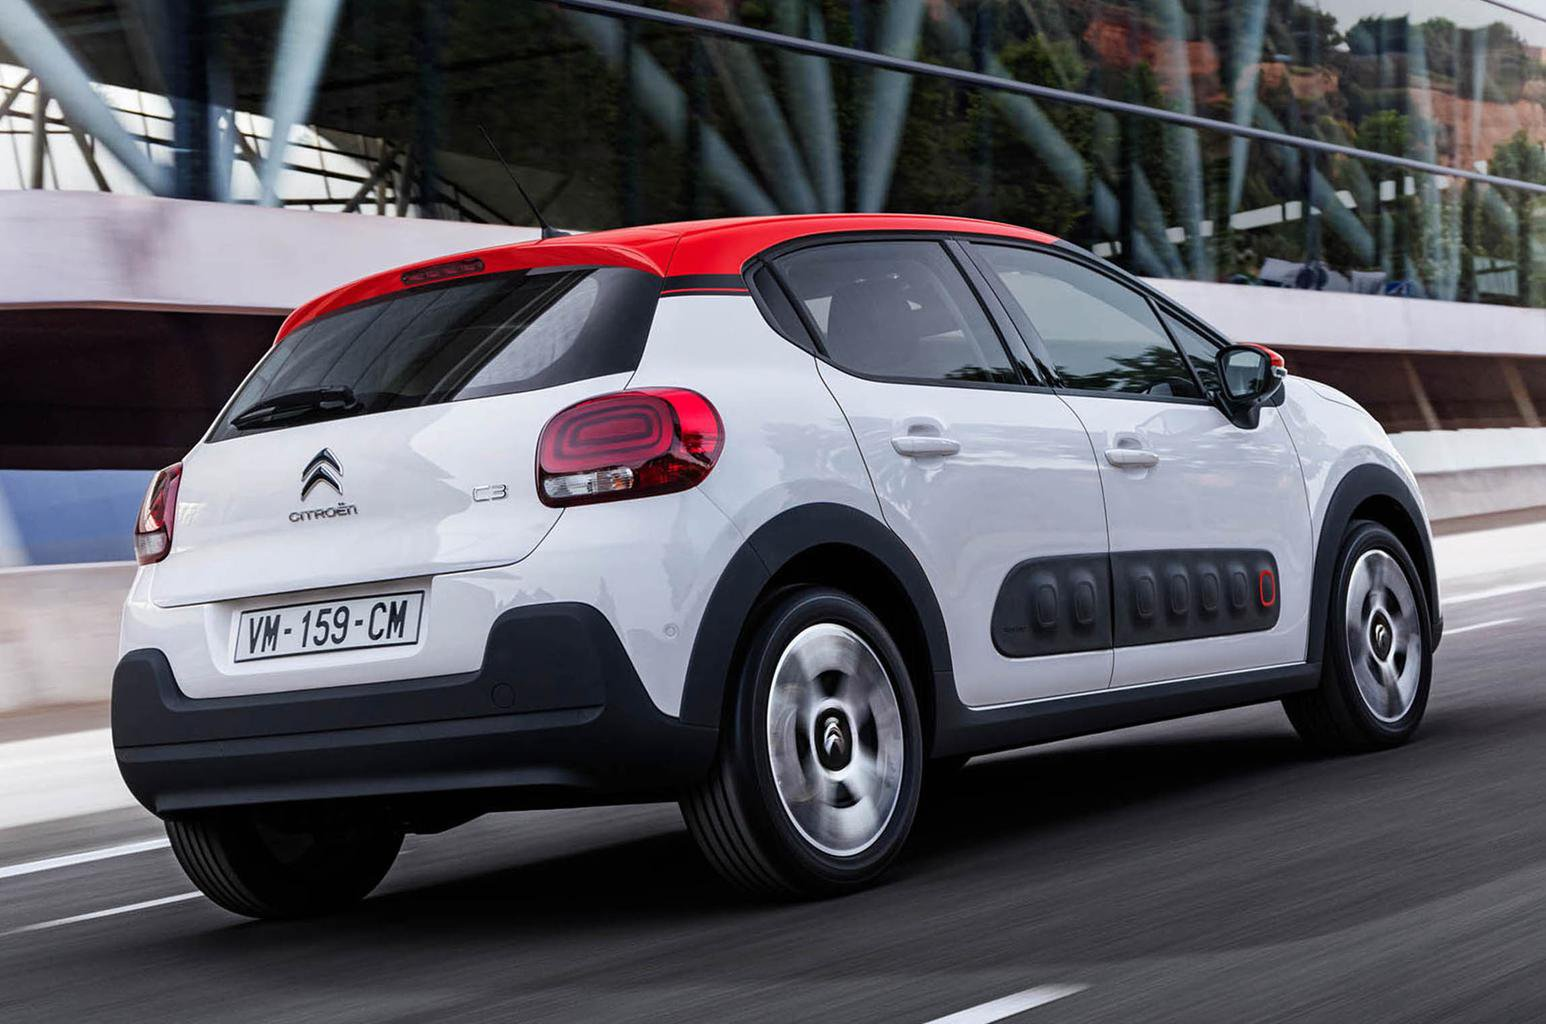 New Citroën C3 revealed